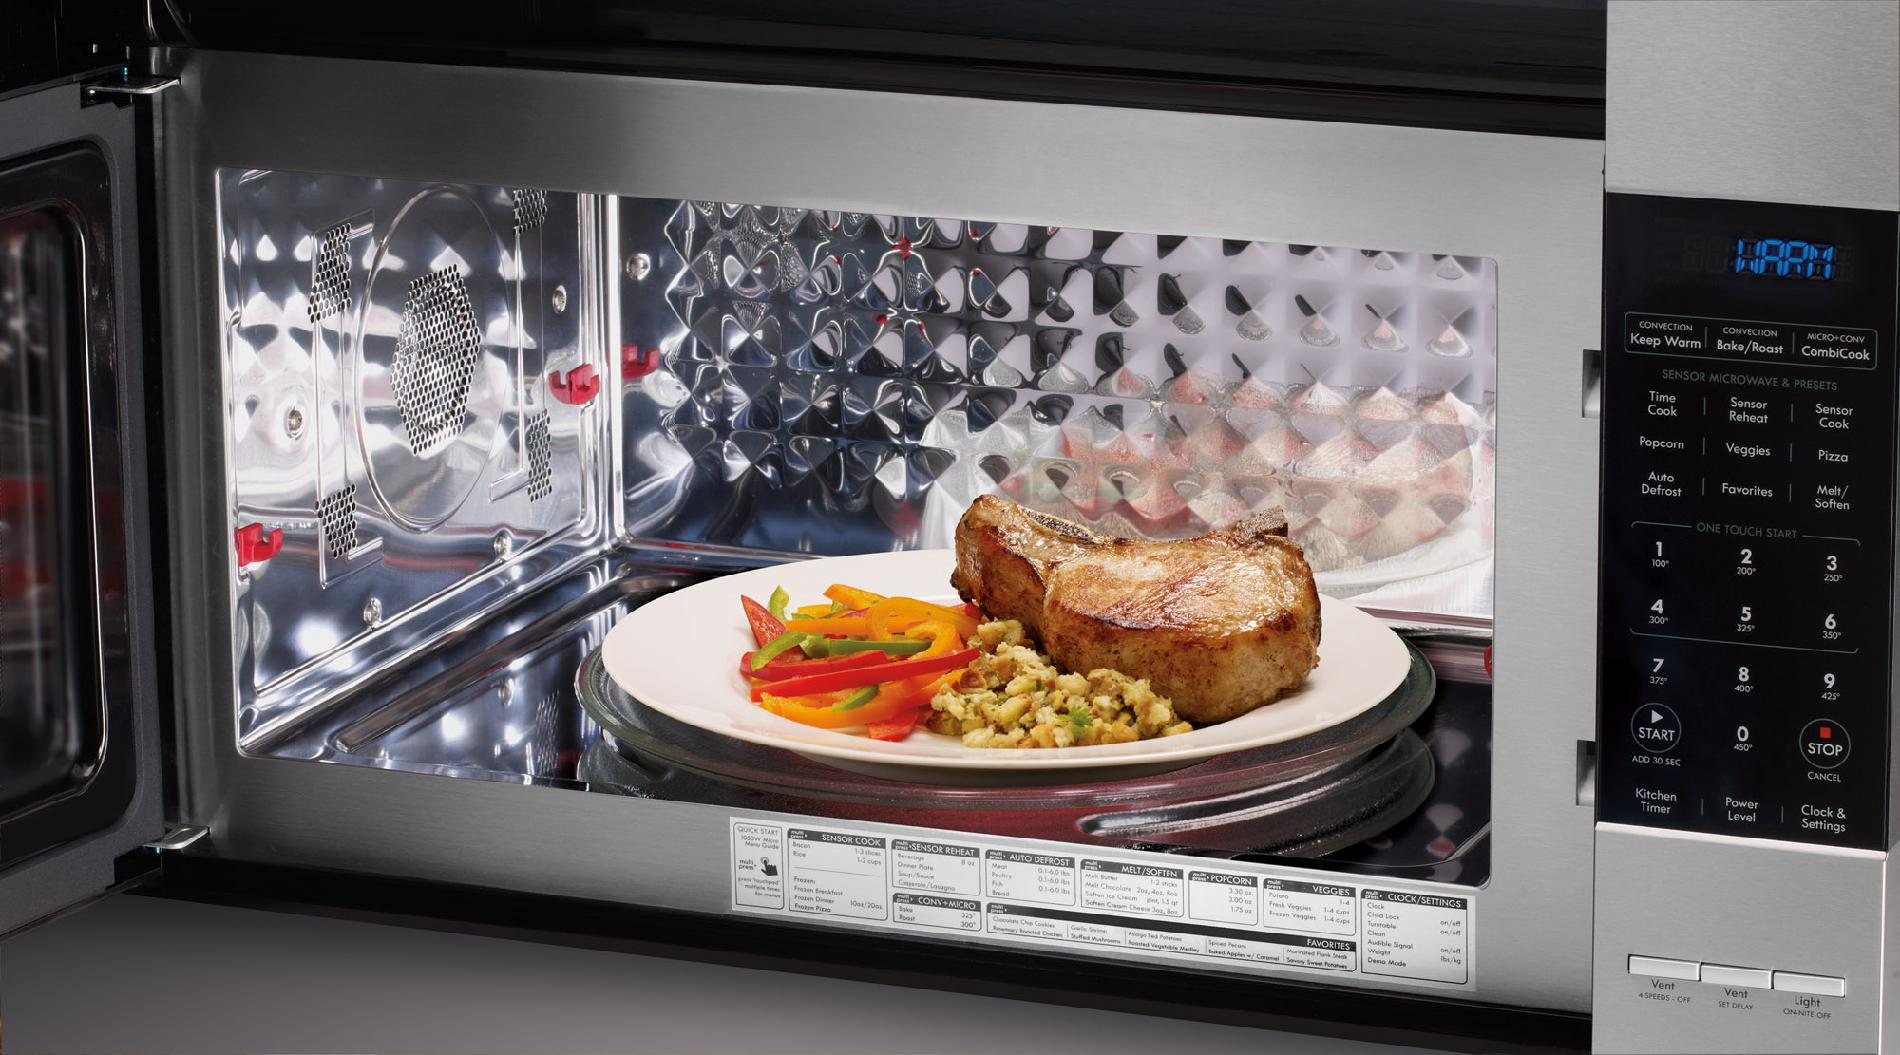 Kenmore Elite 80373 1.8 cu. ft. Over-the-Range Convection Microwave - Stainless Steel